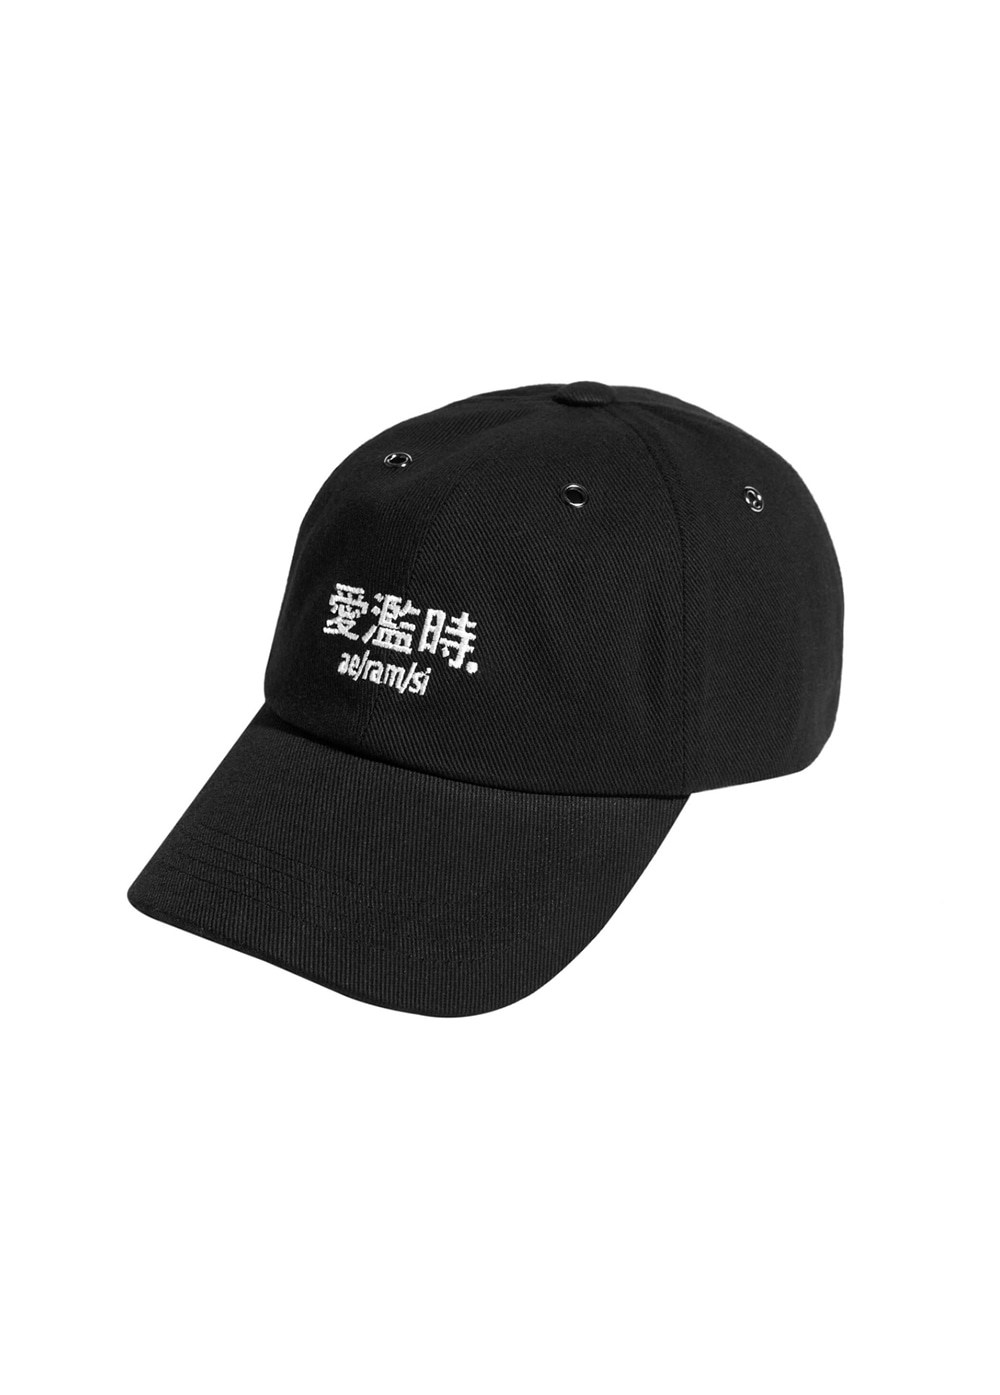 LMC AERAMSI WORDS 6 PANEL CAP black